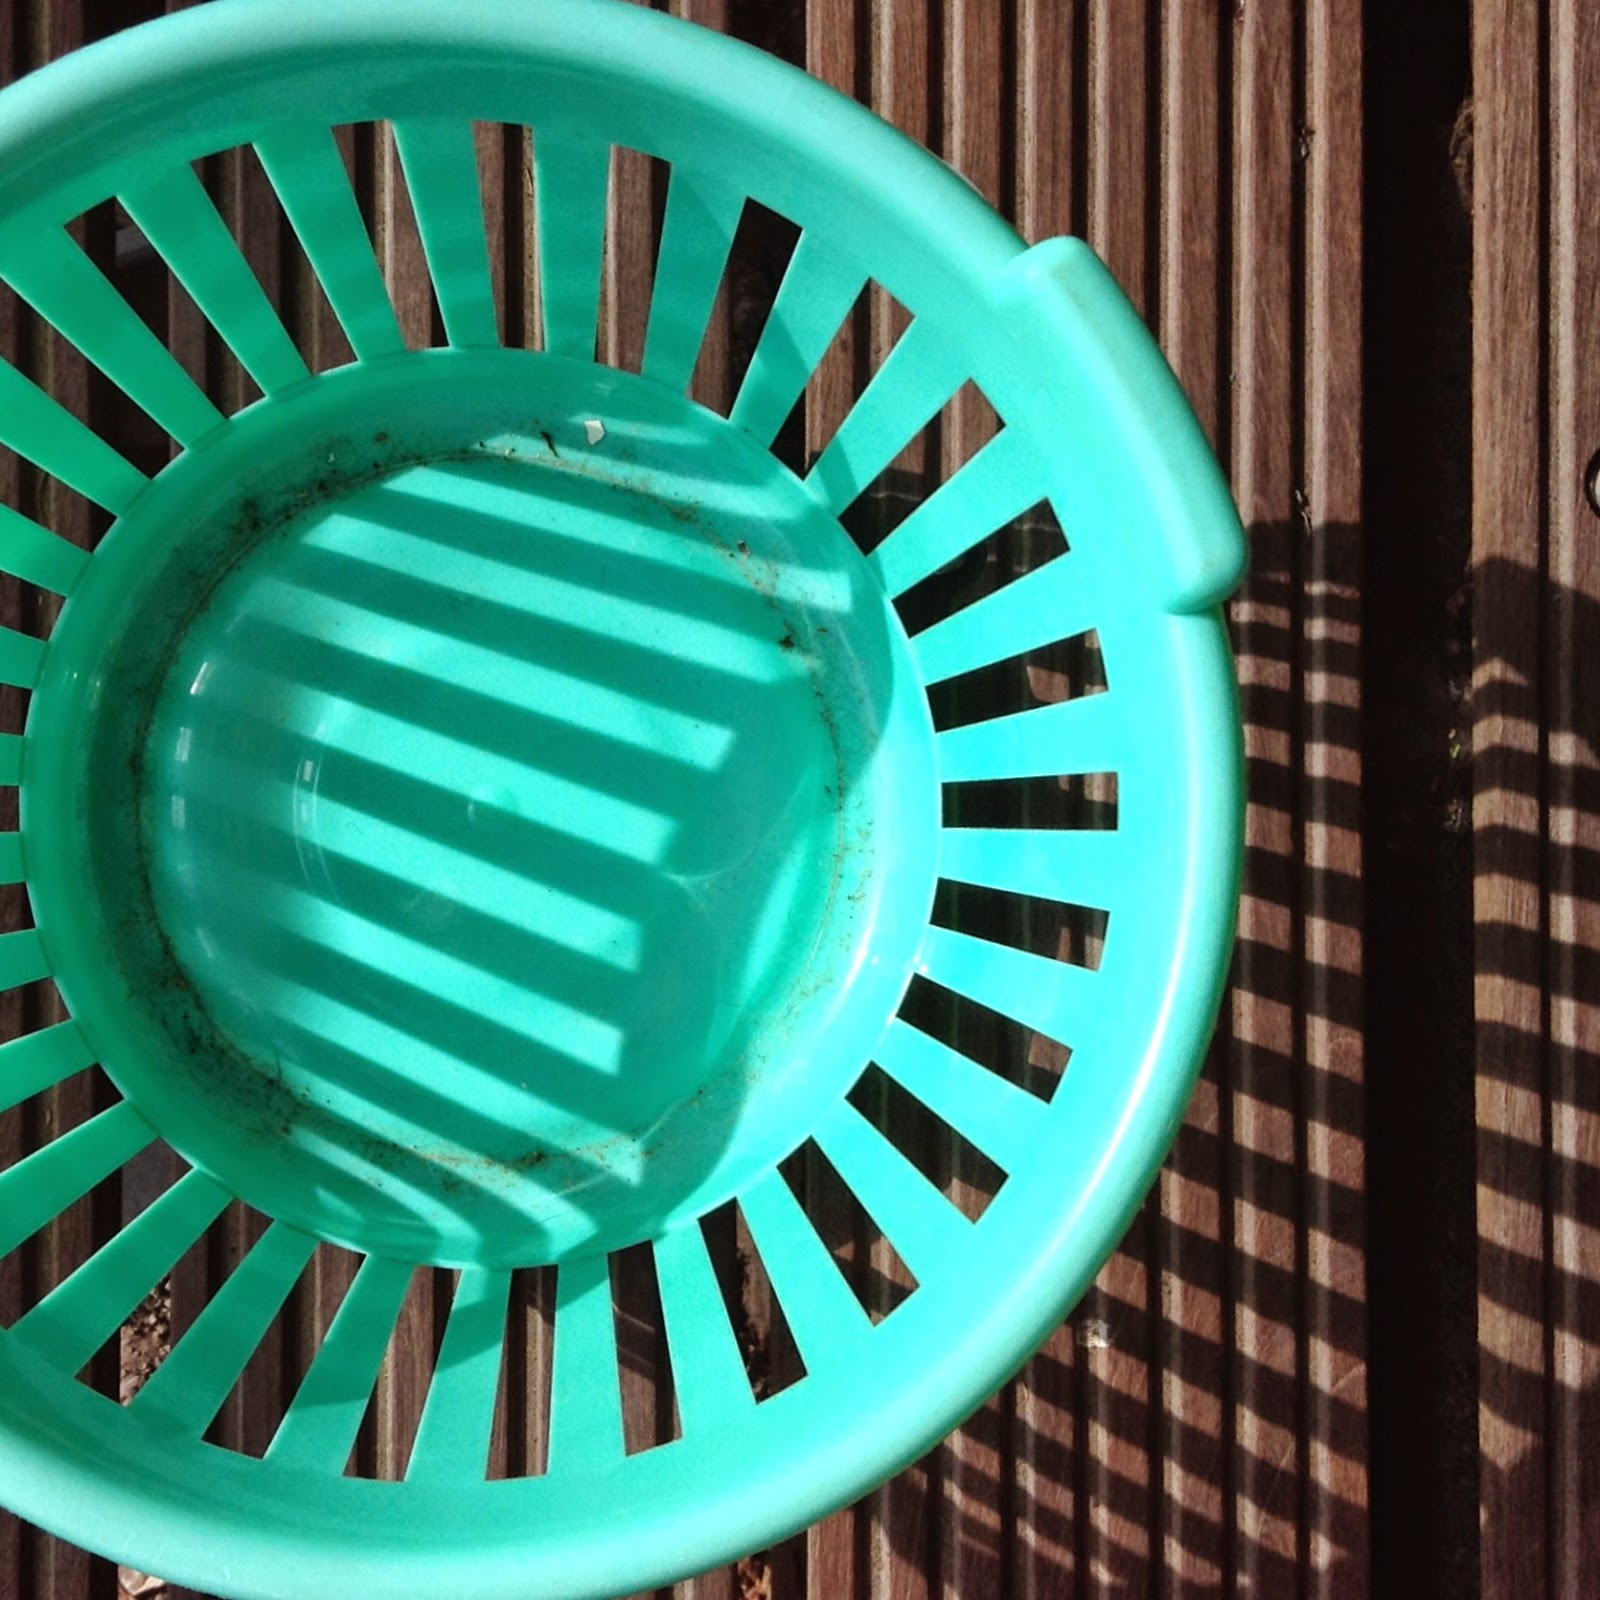 green laundry basket and its shadows